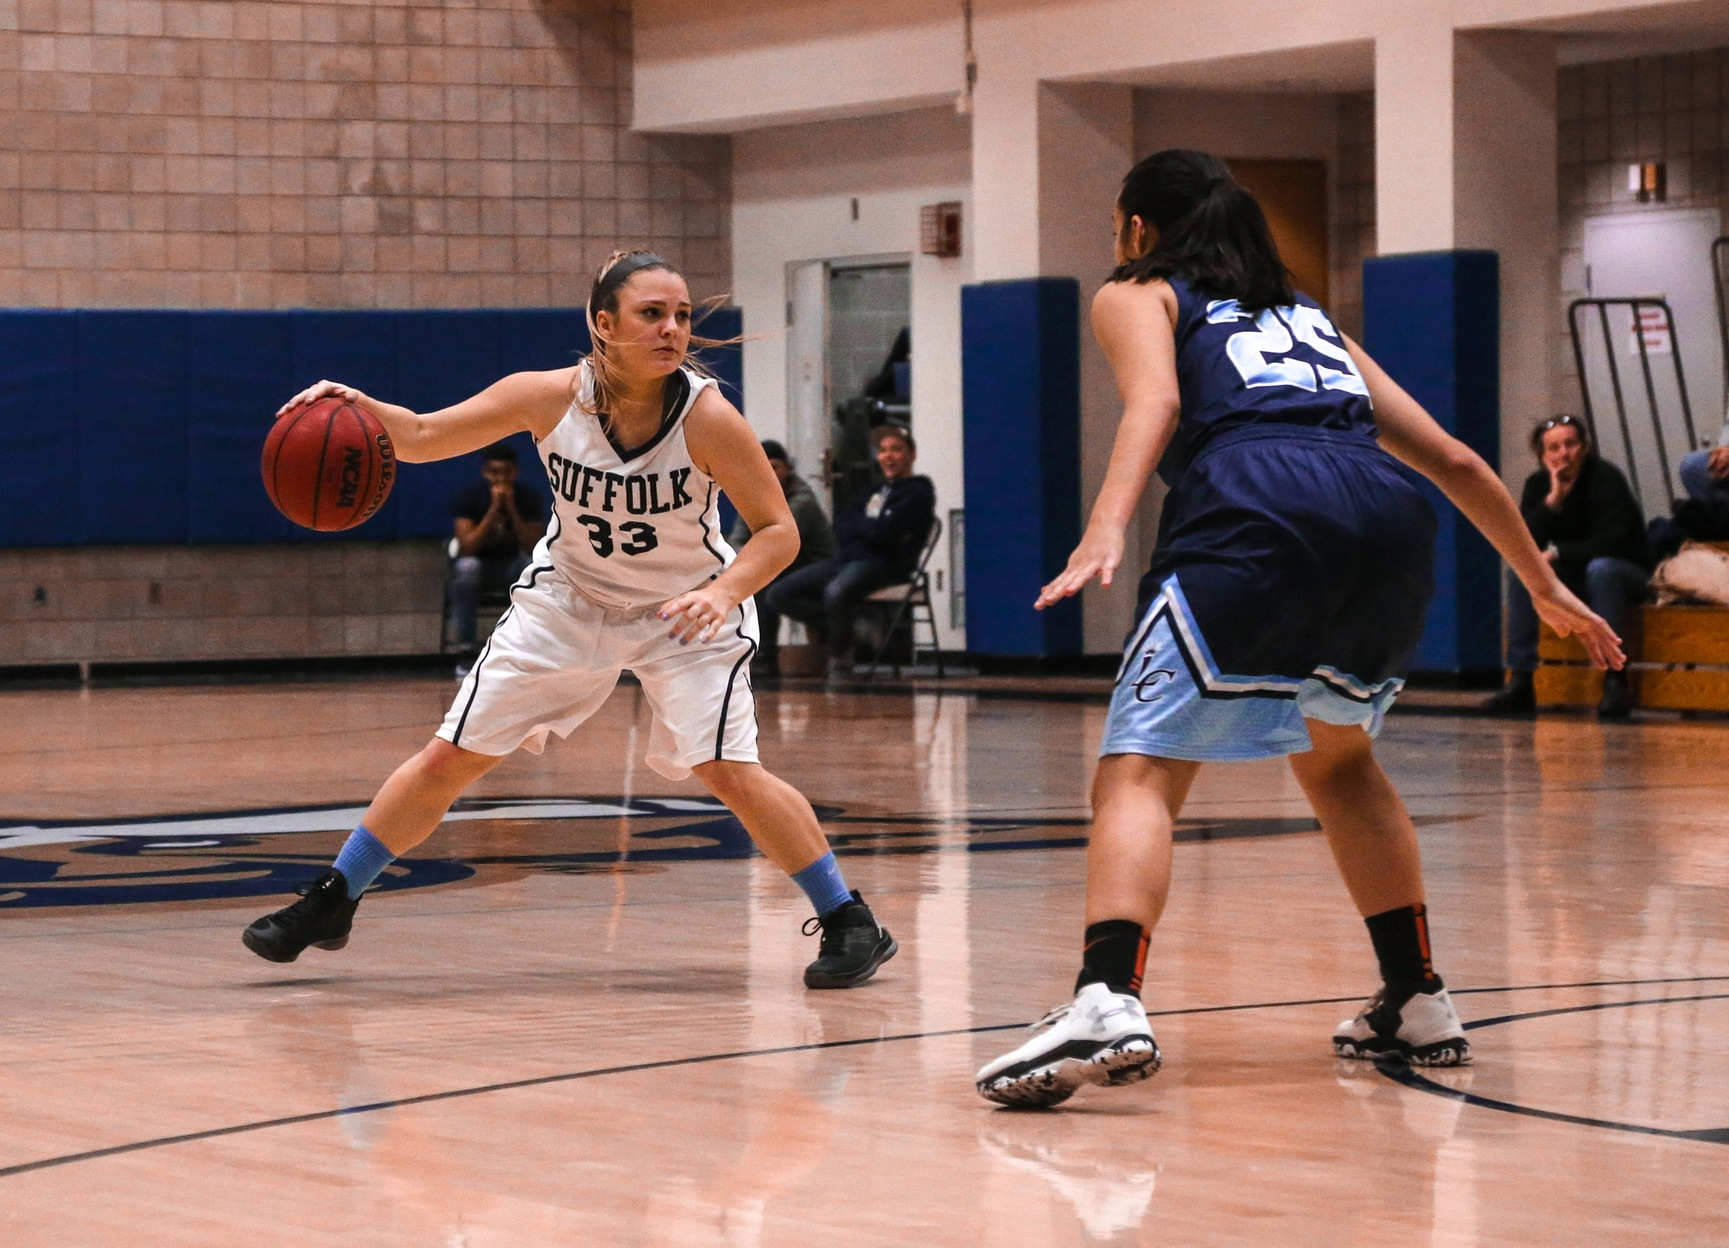 Women's Basketball's GNAC Title Hunt Begins at Norwich Tuesday